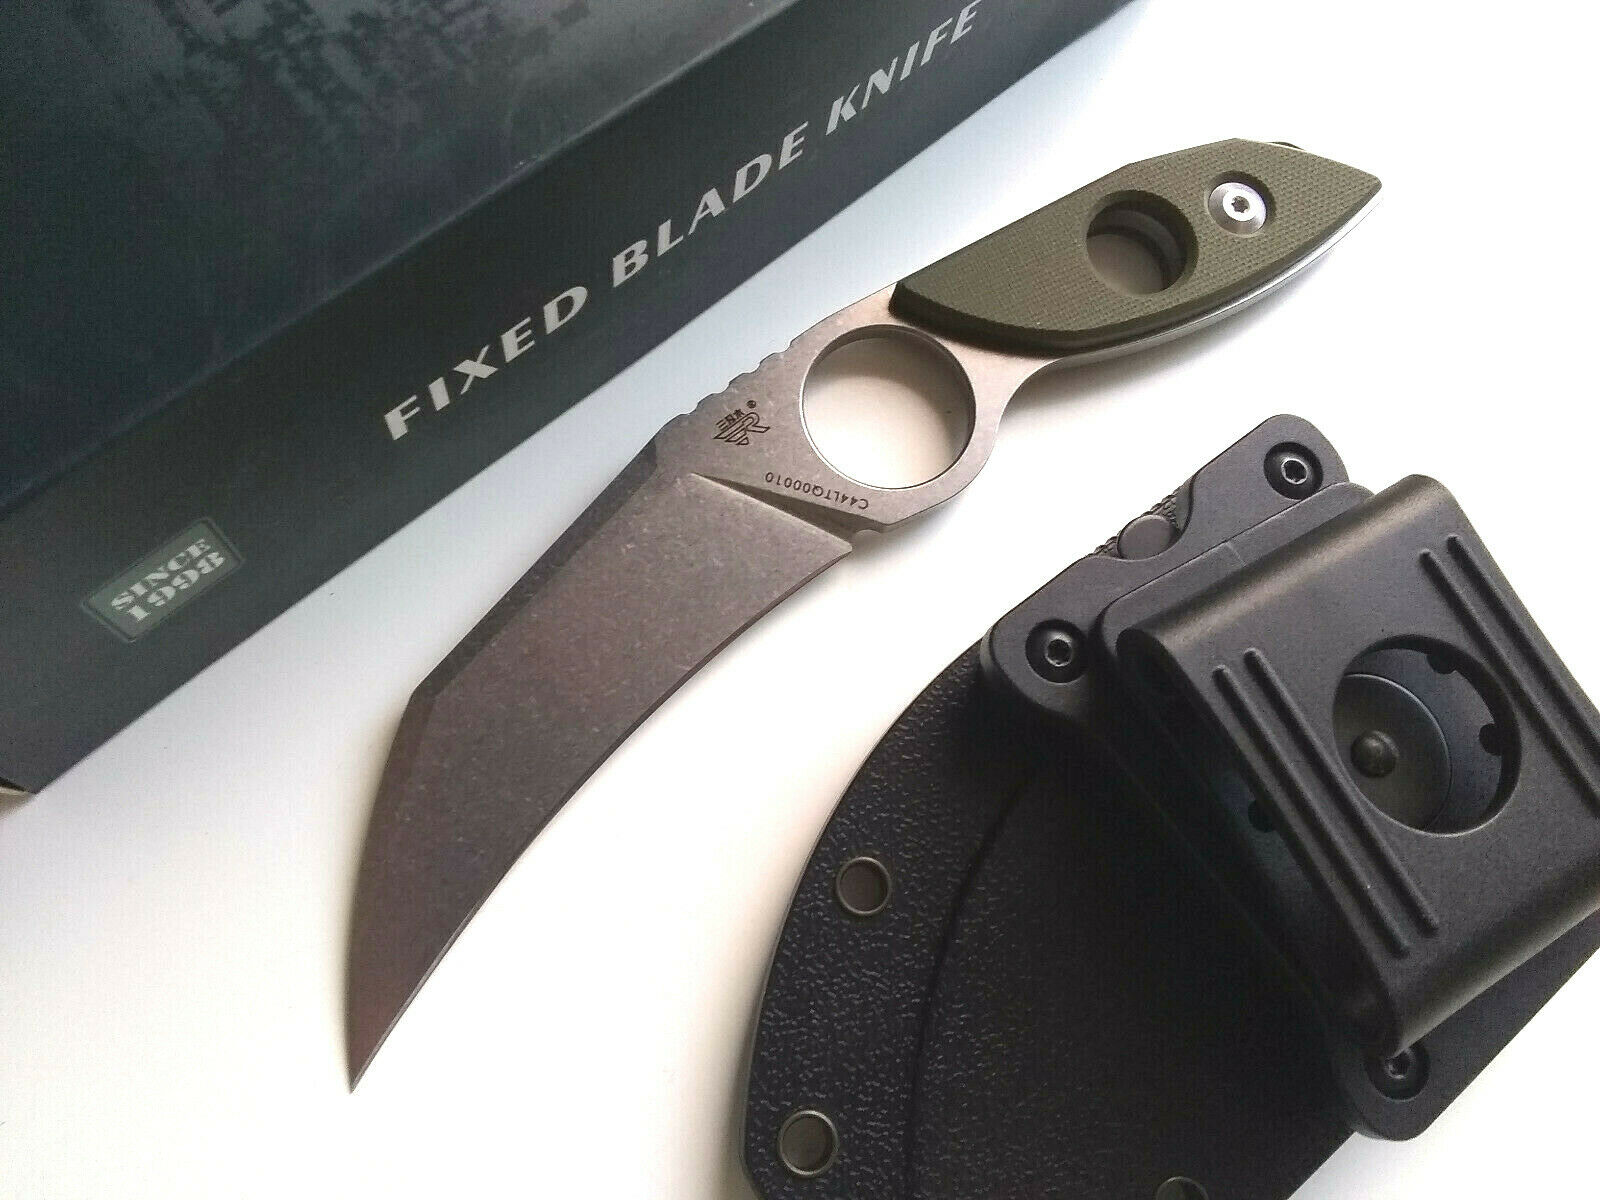 Sanrenmu S615-1 Horizontal Concealed Carry 8Cr14MoV Full Tang Fixed Blade Knife EDC